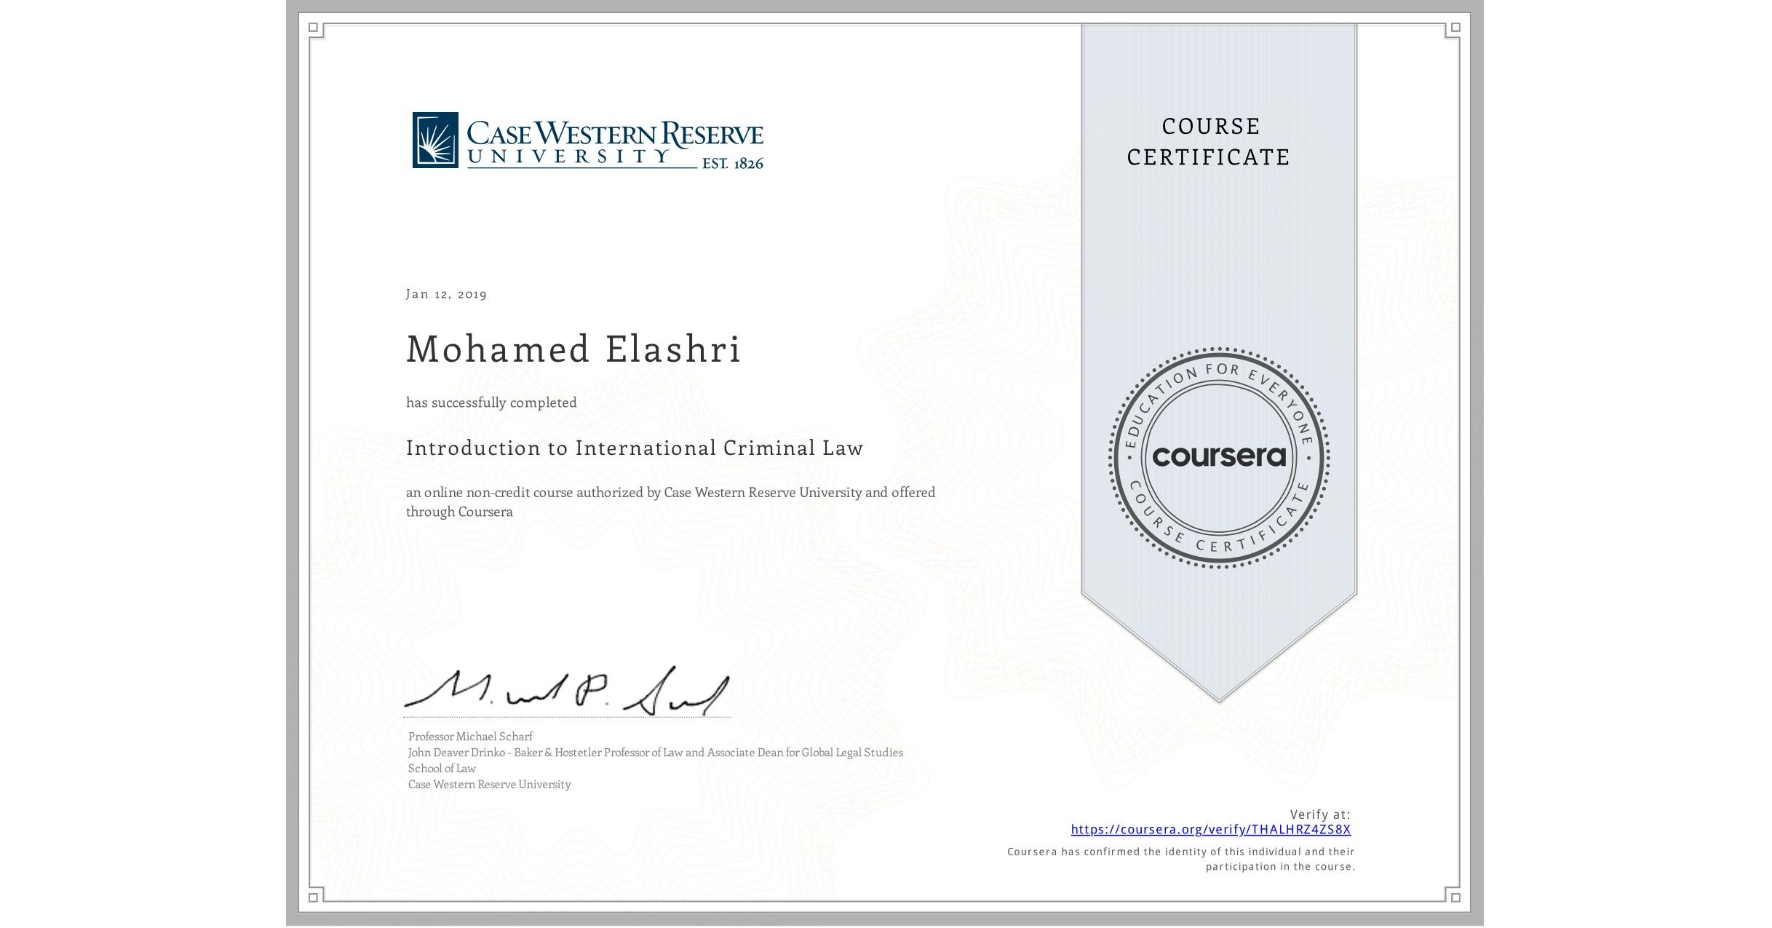 View certificate for Mohamed Elashri, Introduction to International Criminal Law, an online non-credit course authorized by Case Western Reserve University and offered through Coursera